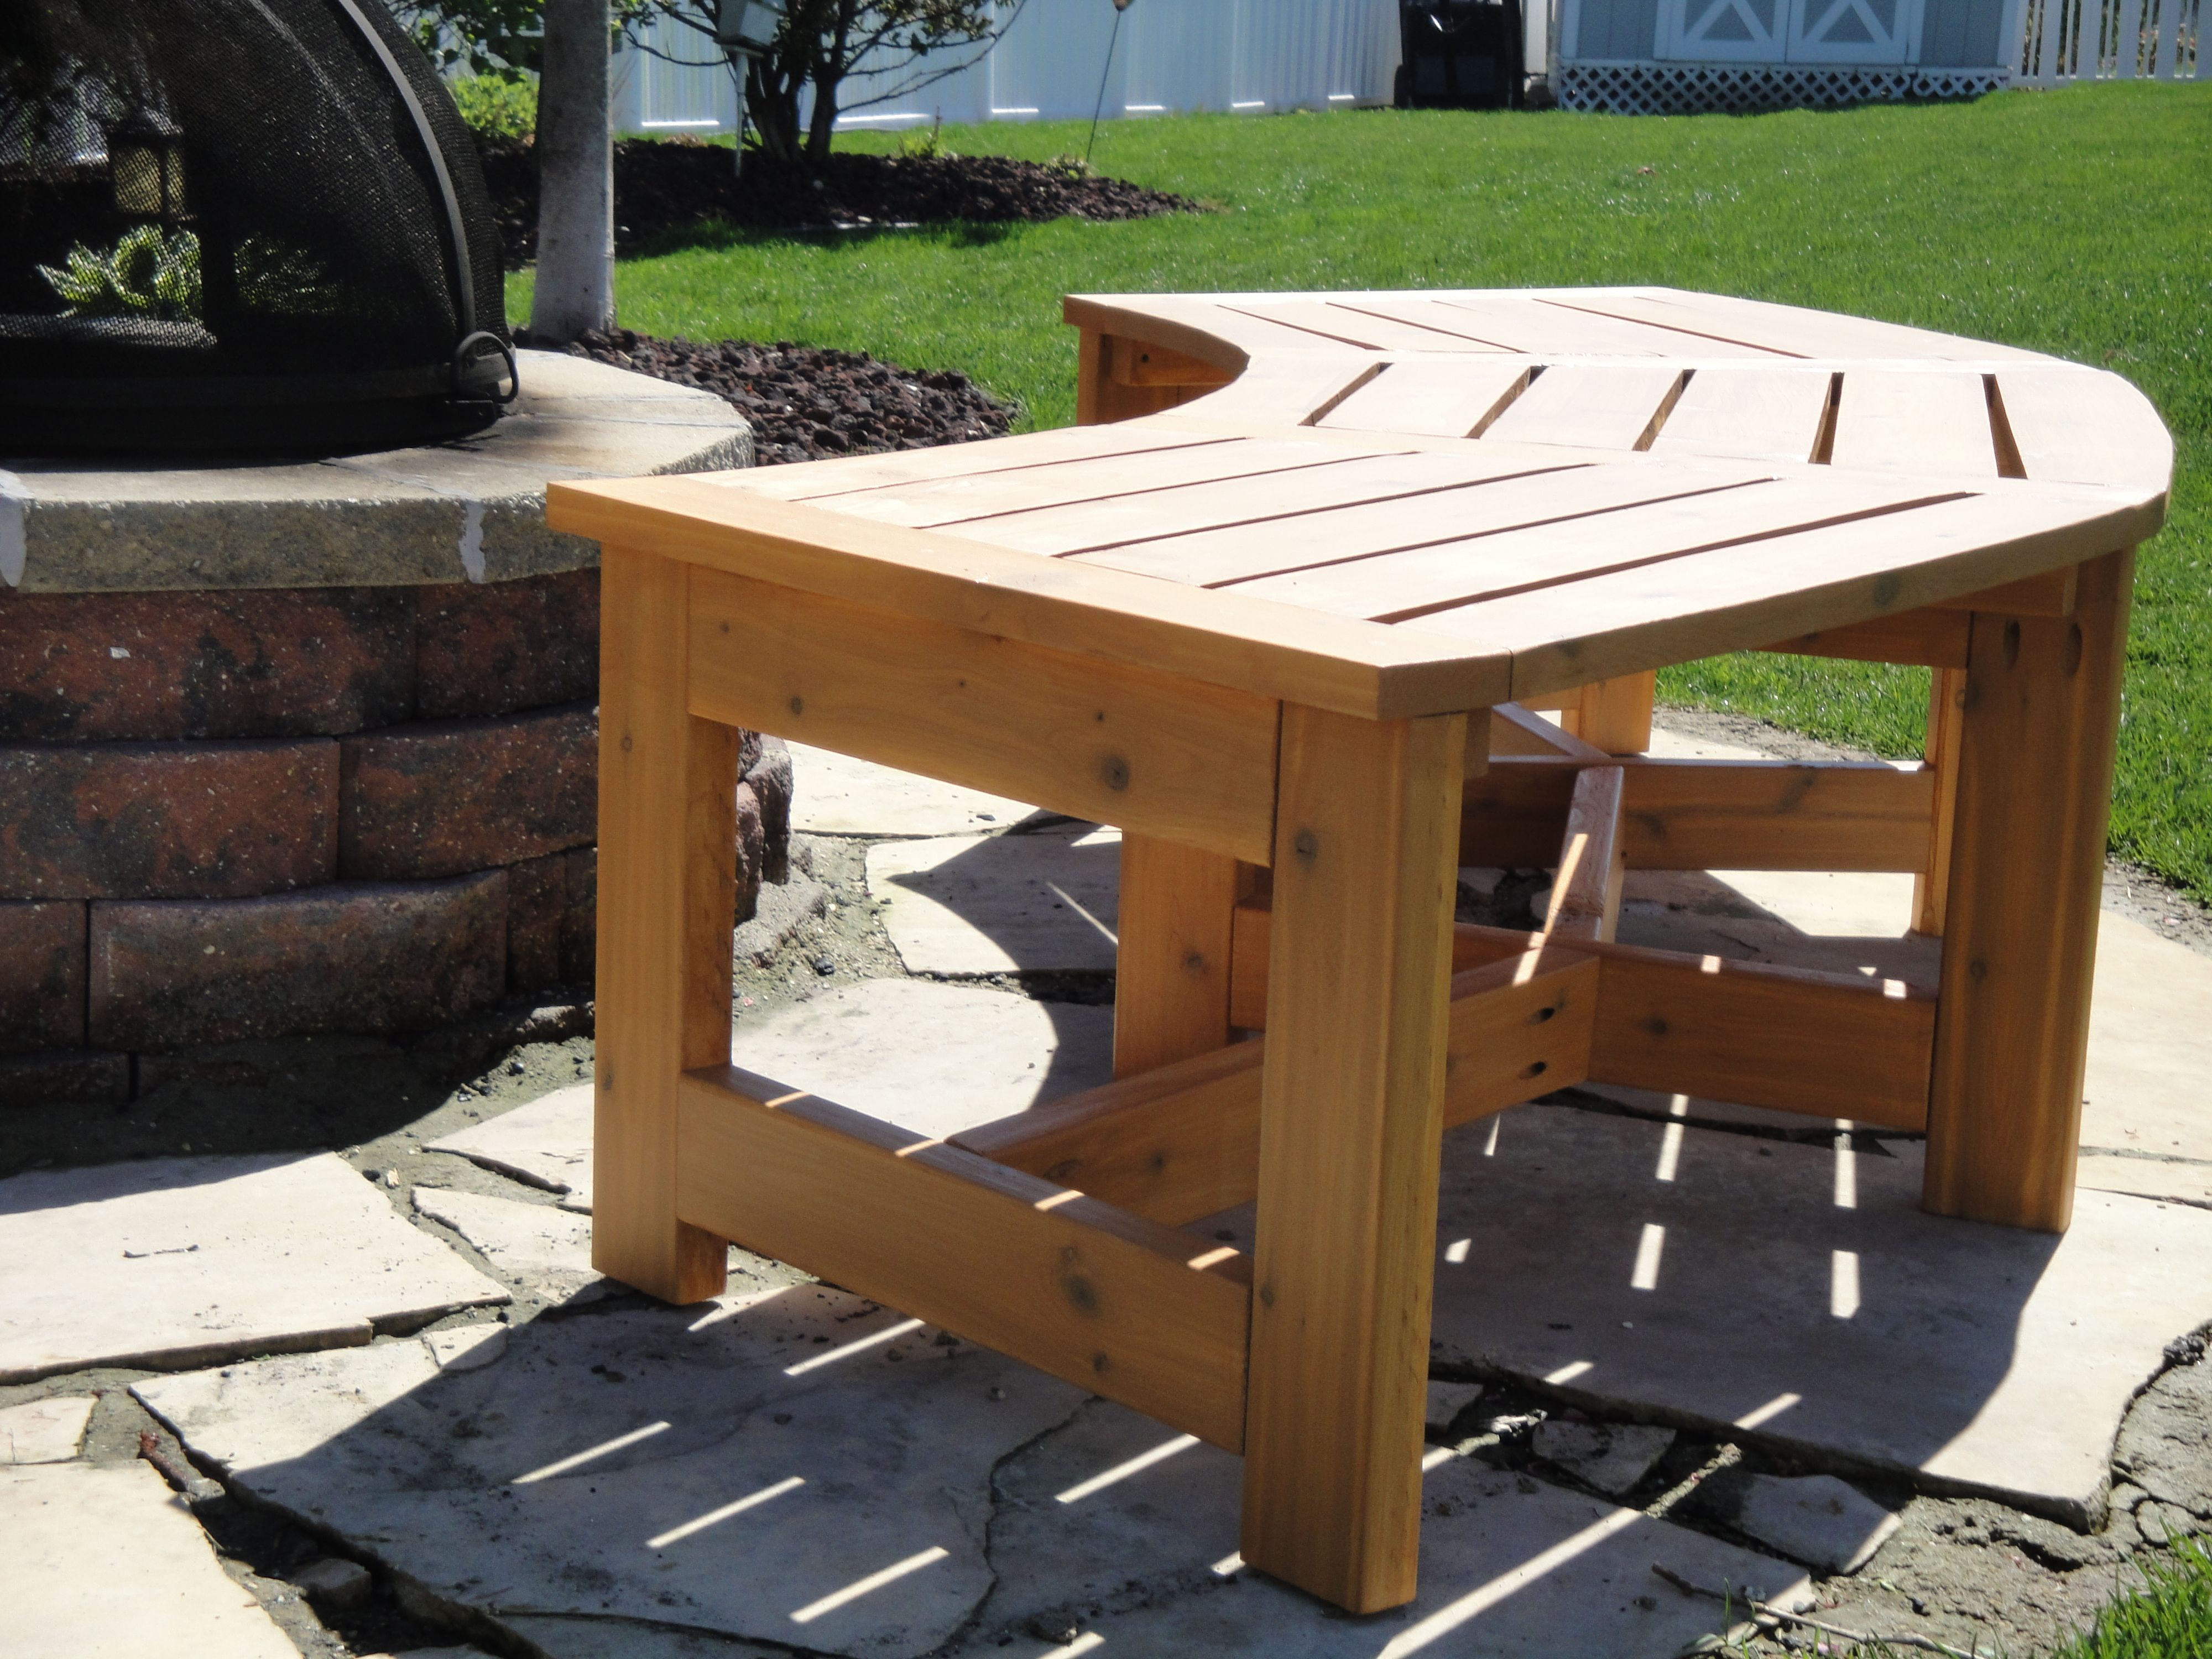 fire pit bench plans oct 4 2014 and built a bench initially we